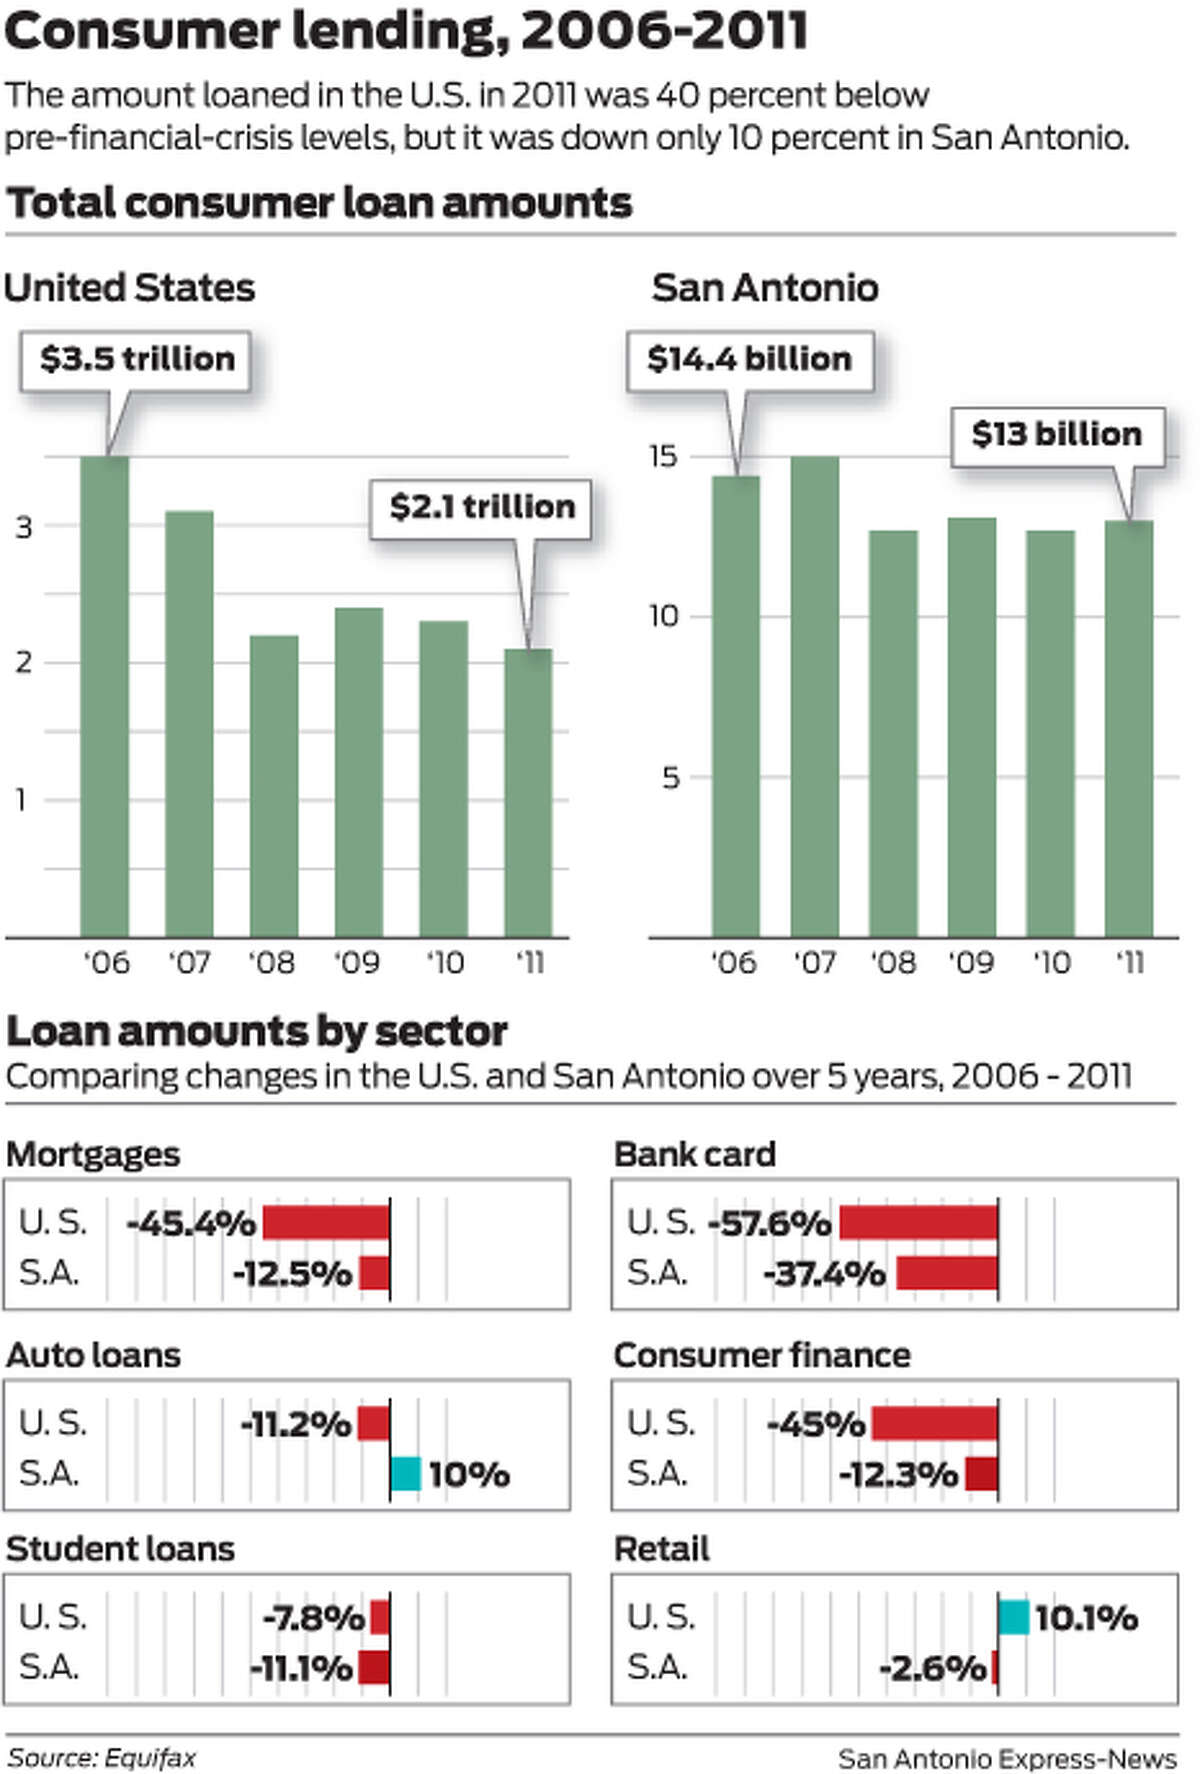 The amount loaned in the U.S. in 2011 was 40 percent below pre-financial-crisis levels, but it was down only 10 percent in San Antonio.